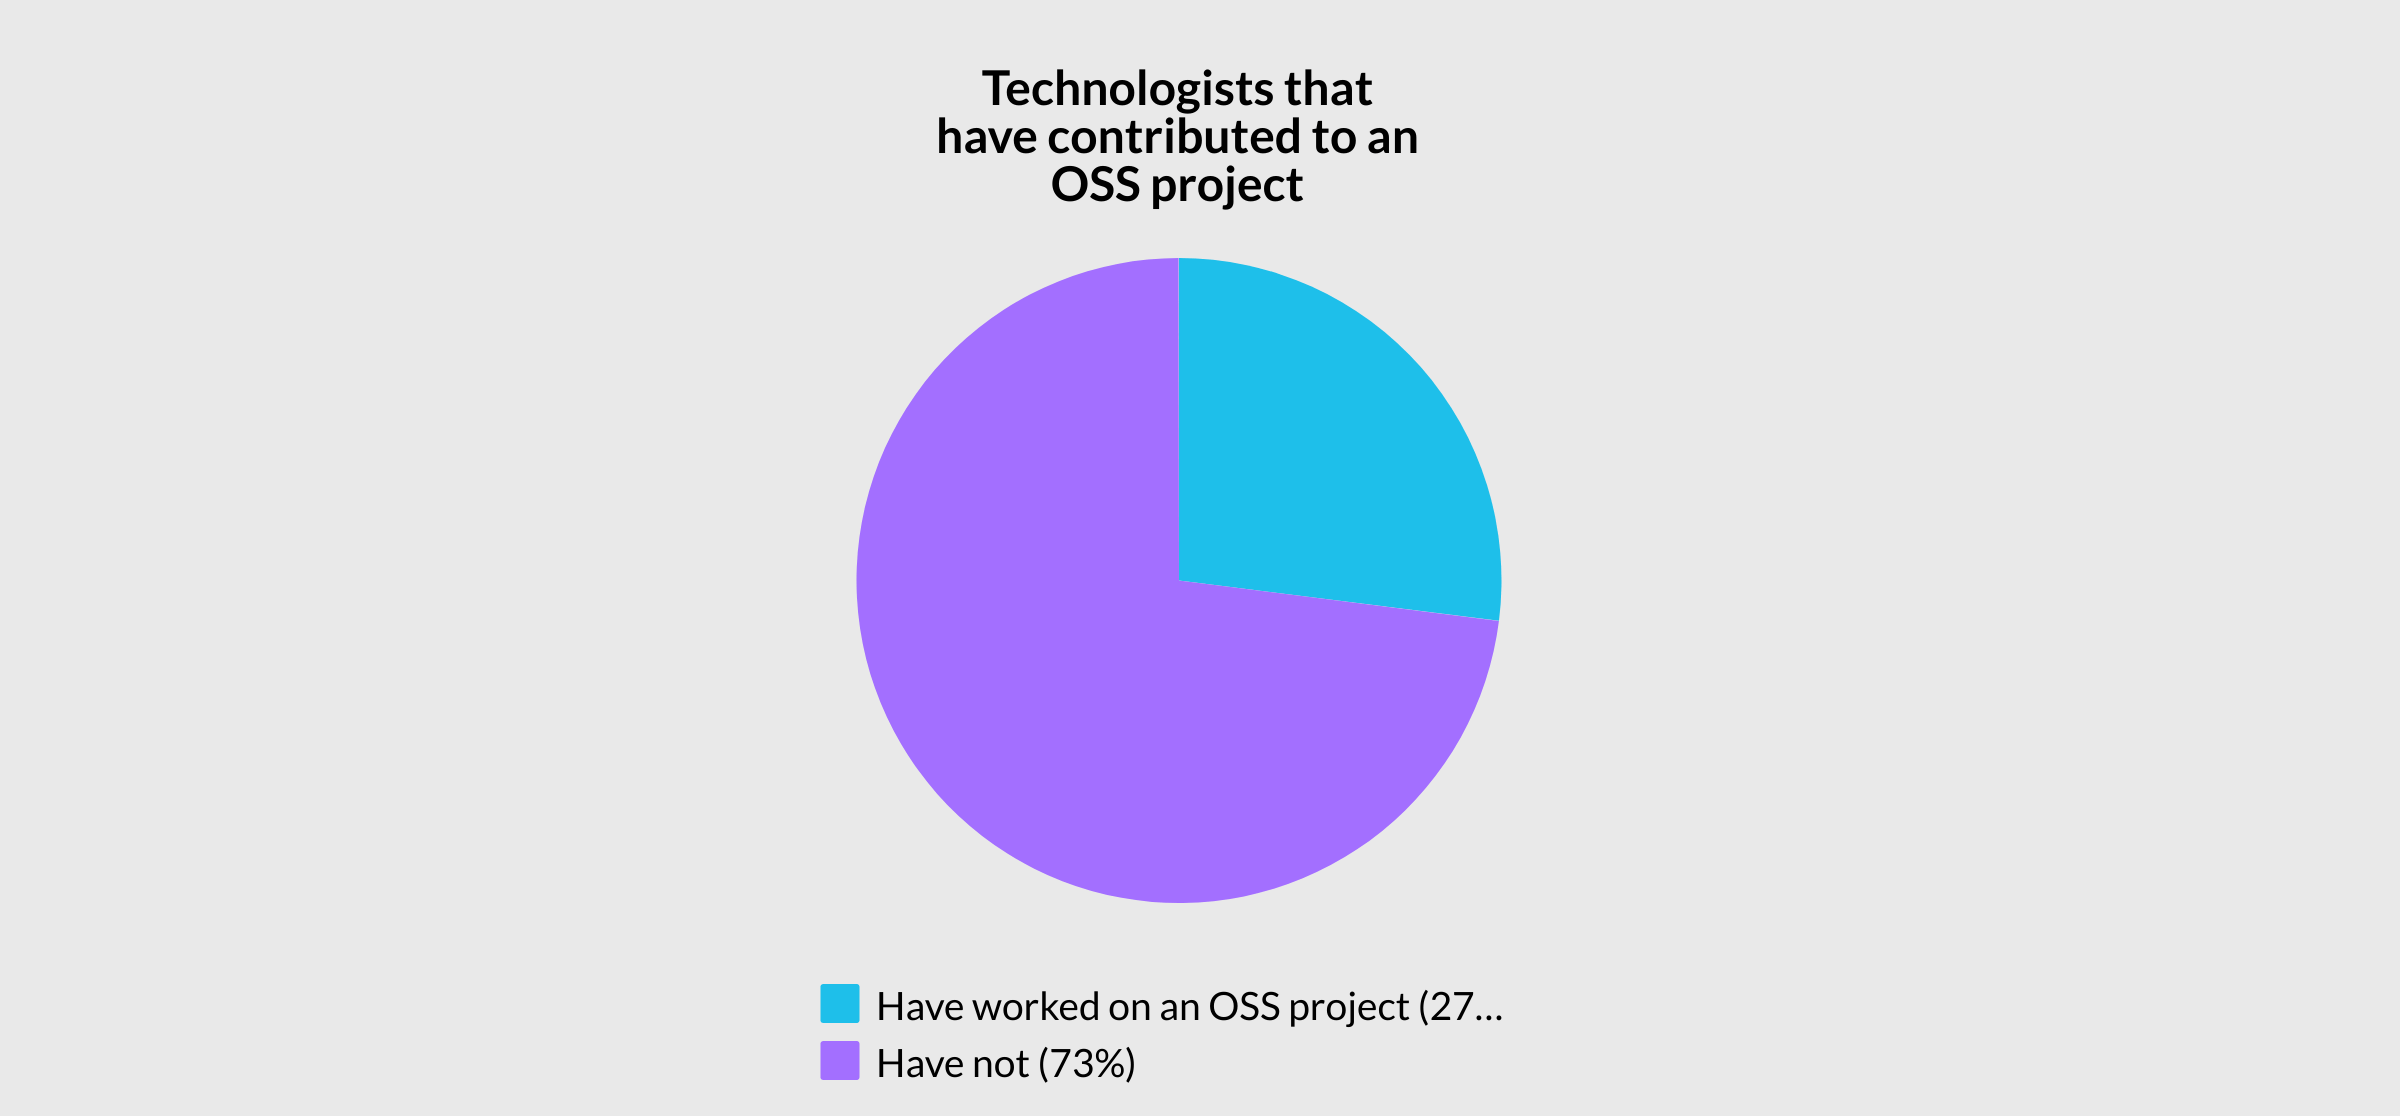 Pie chart shorting breakdown of technologist who have and have not contributed to open source